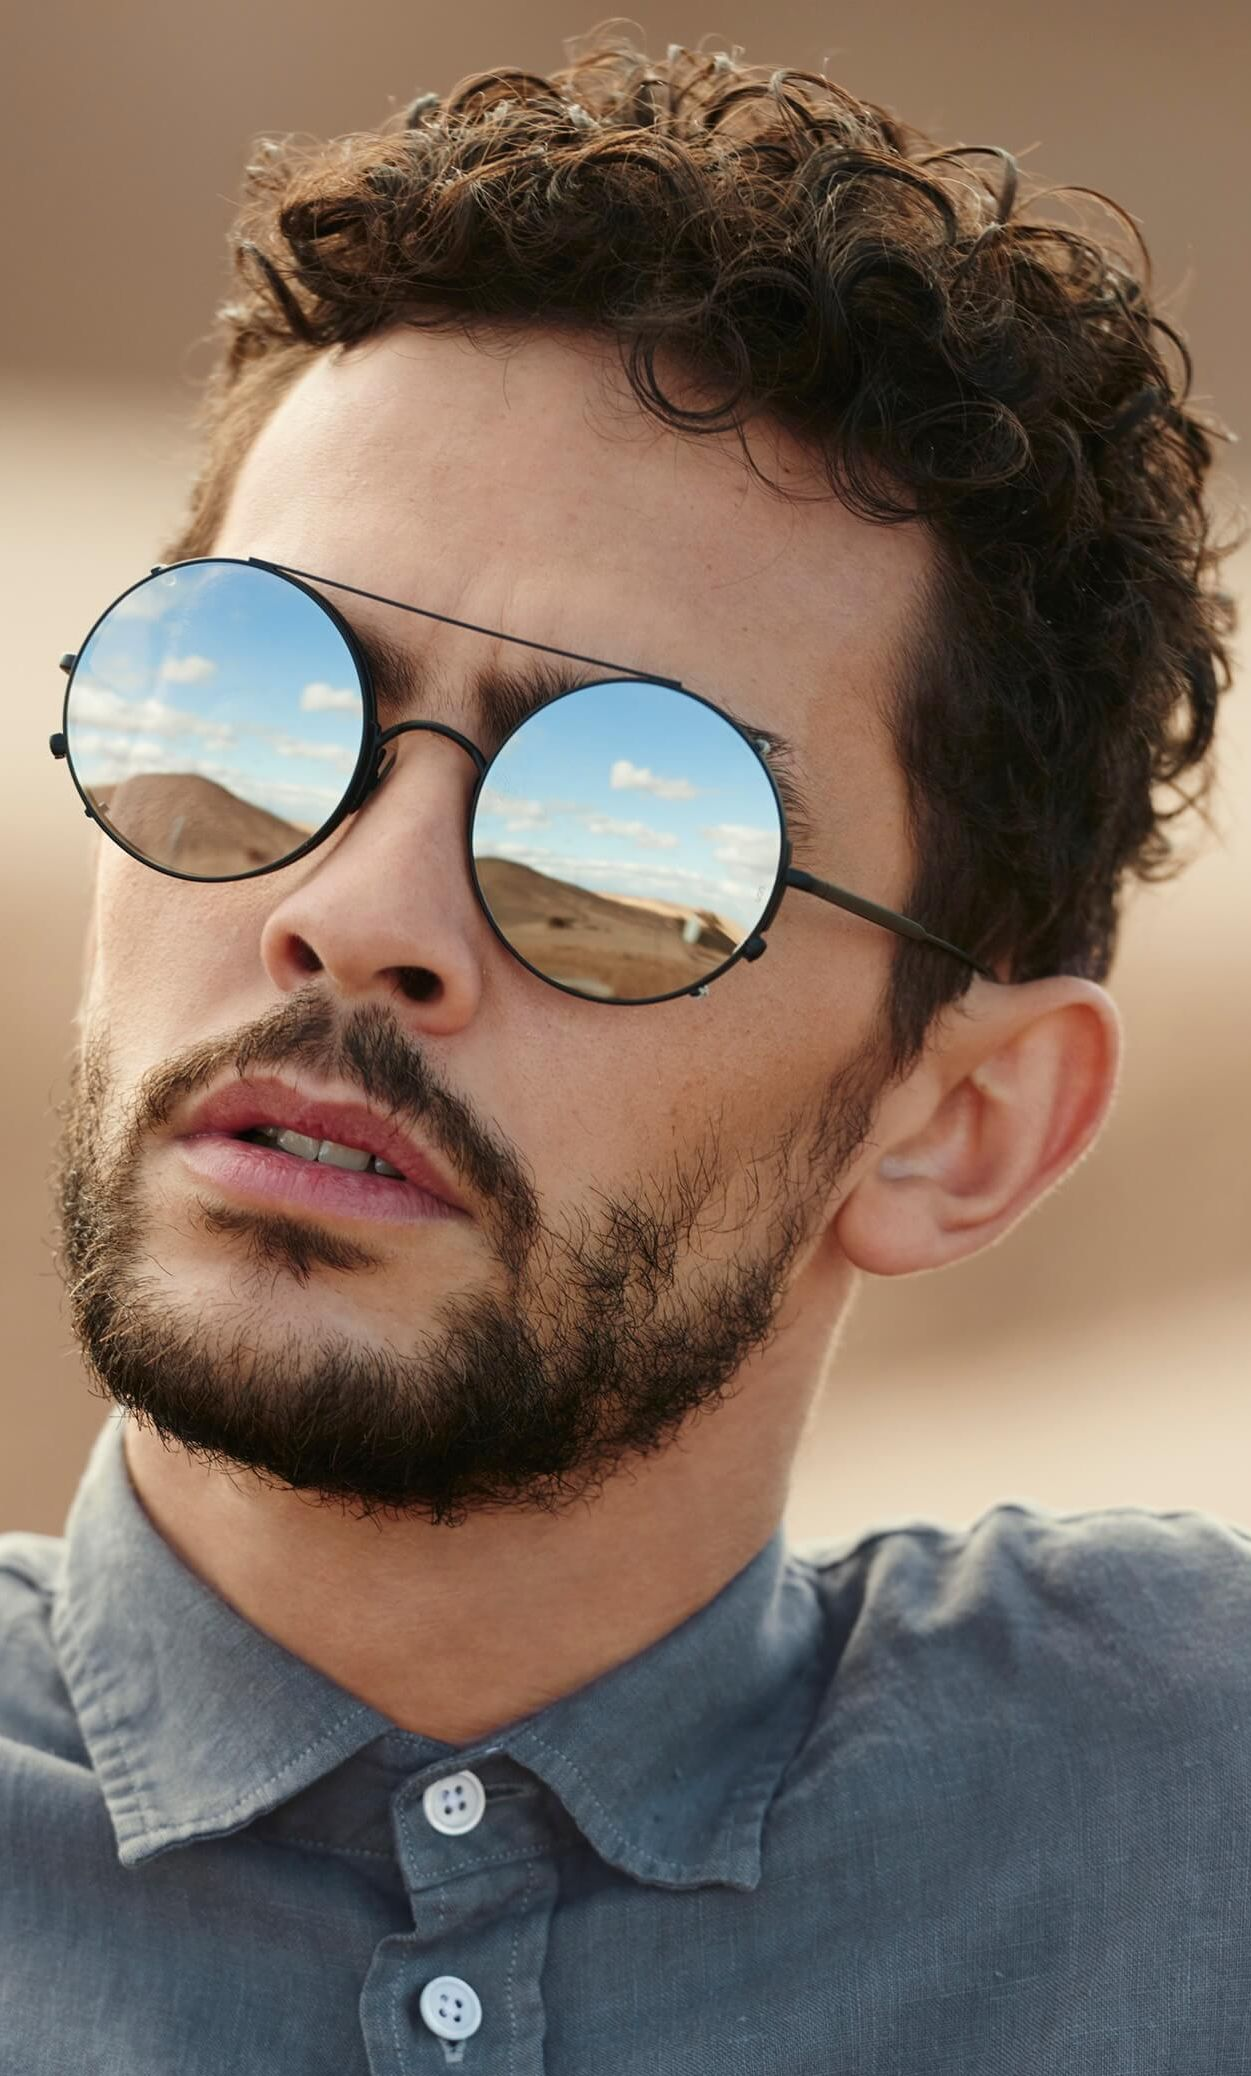 Pin by Aaron Park on MEN S FASHION in 2019   Pinterest   Sunglasses ... 5e61af73bd